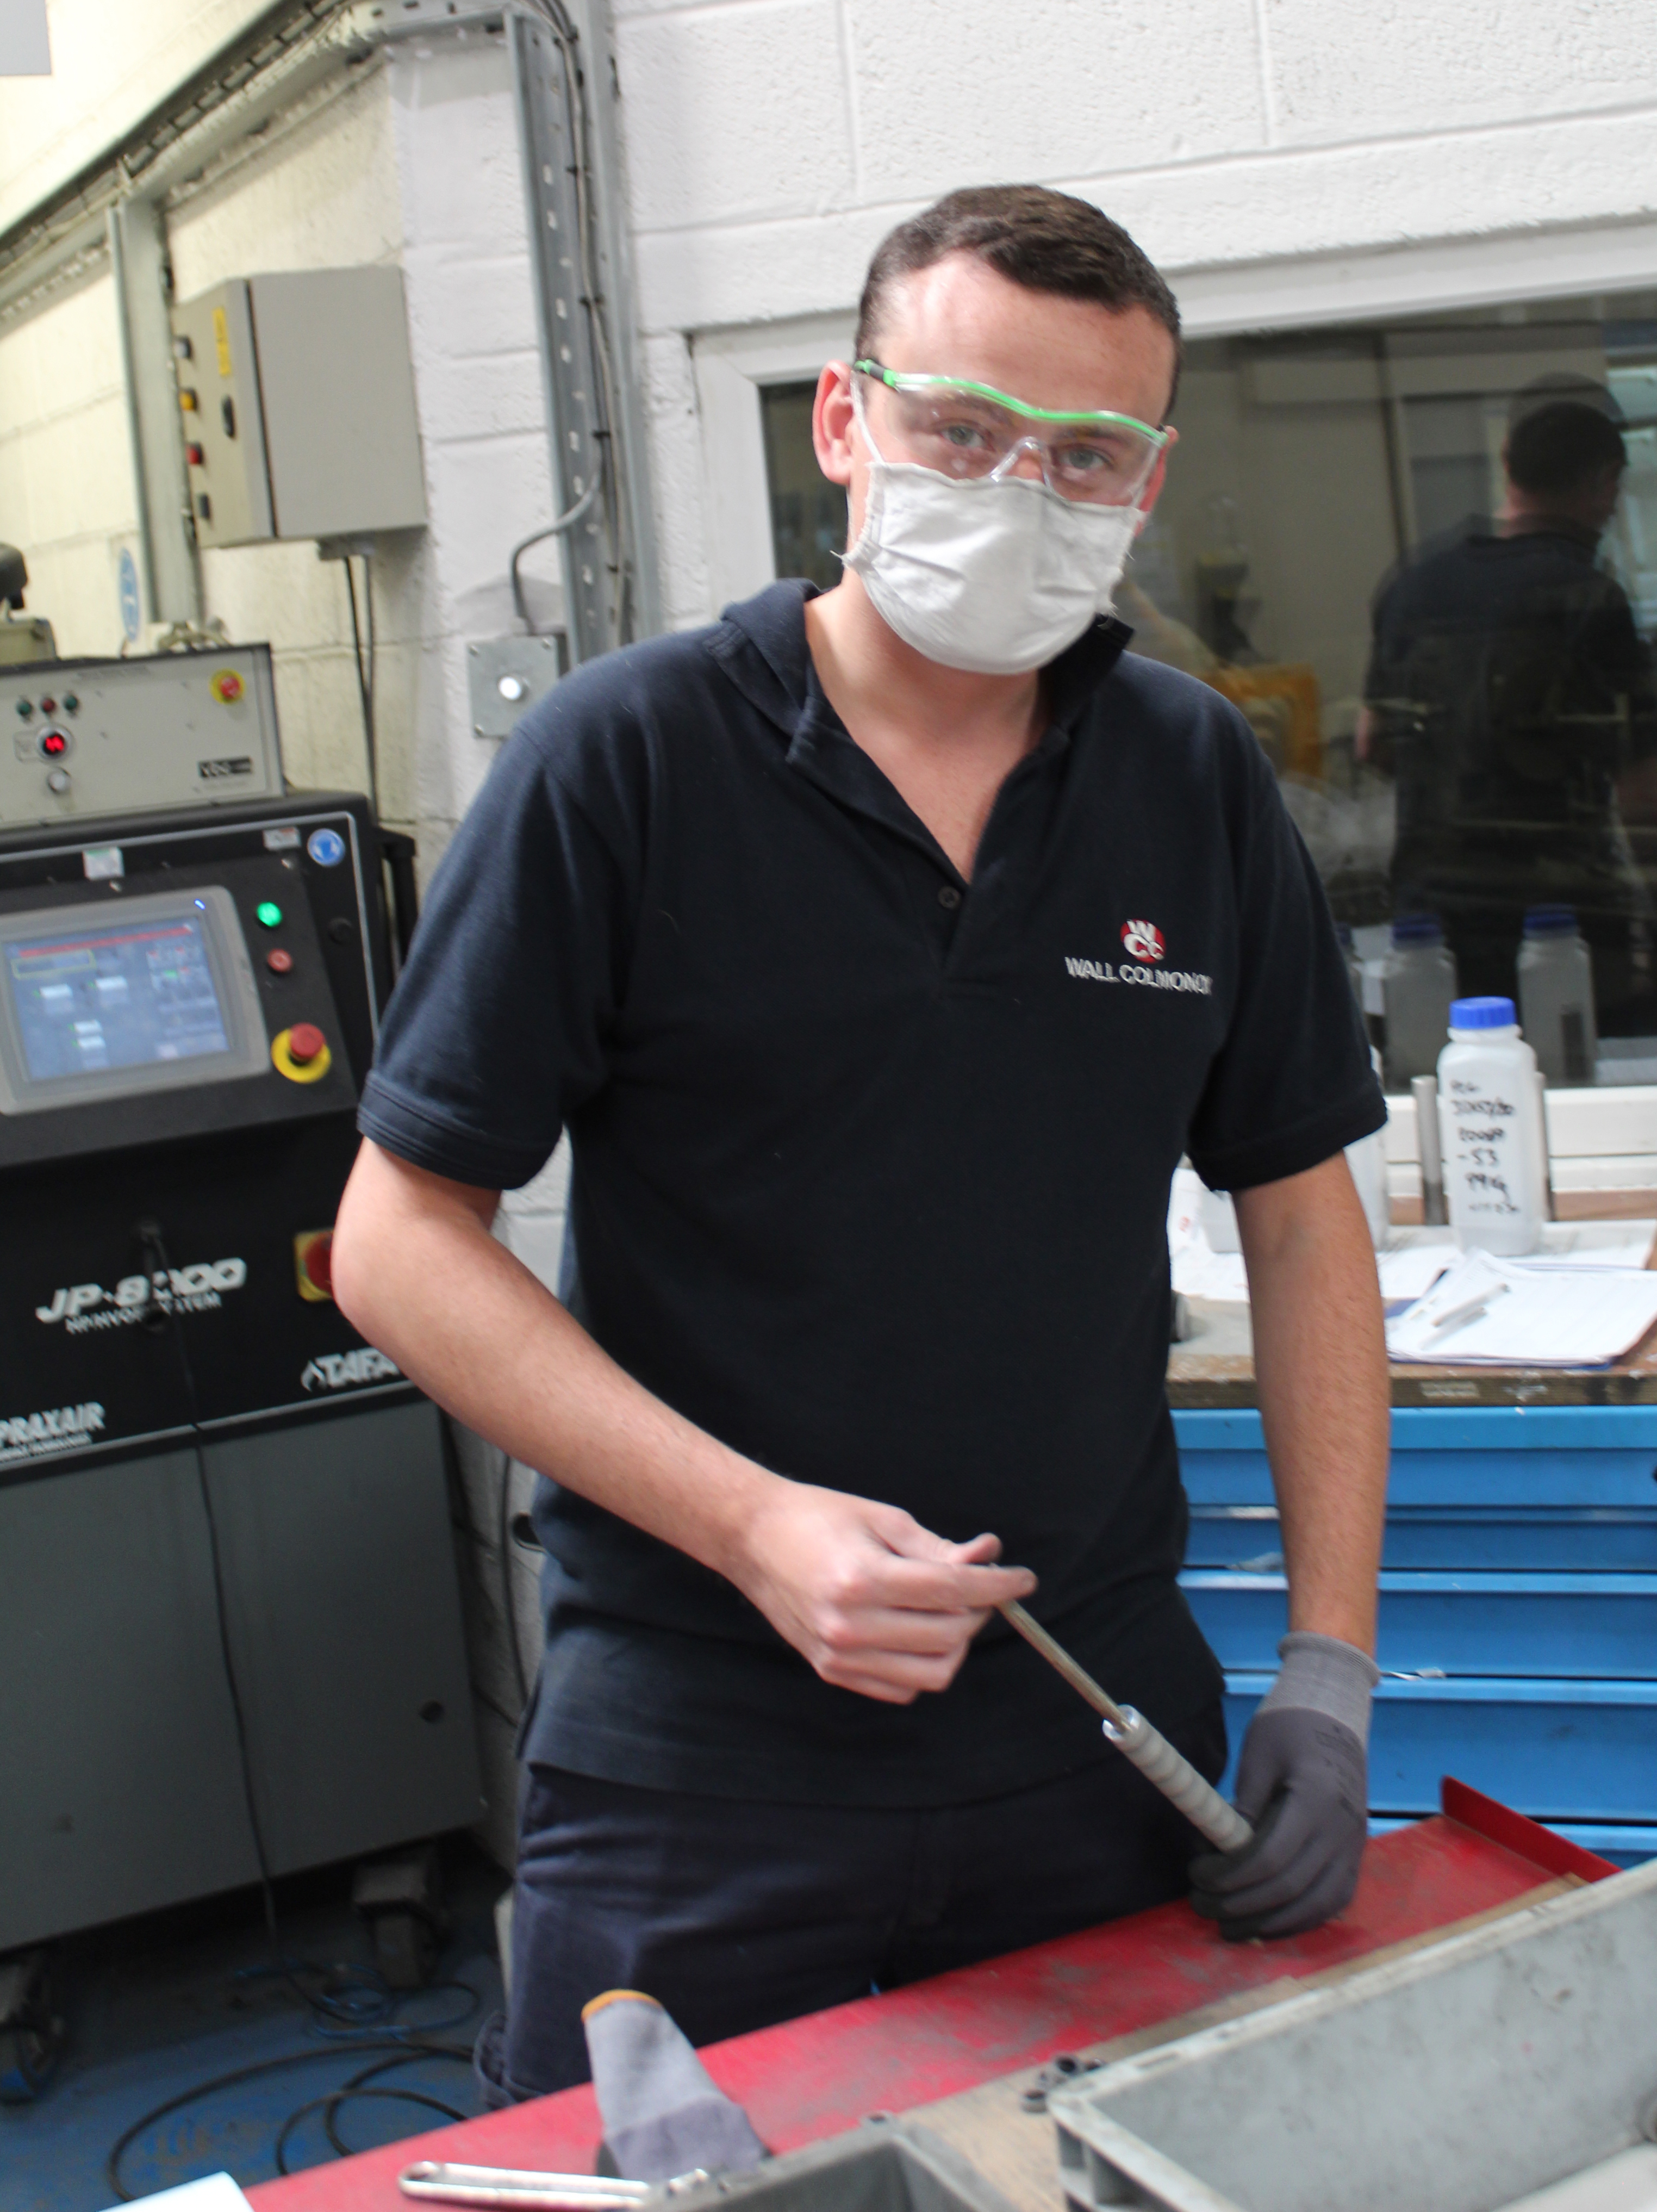 Chris Adey in Aerobraze UK processing components ready for Tungsten Carbide coating applied by HVOF.